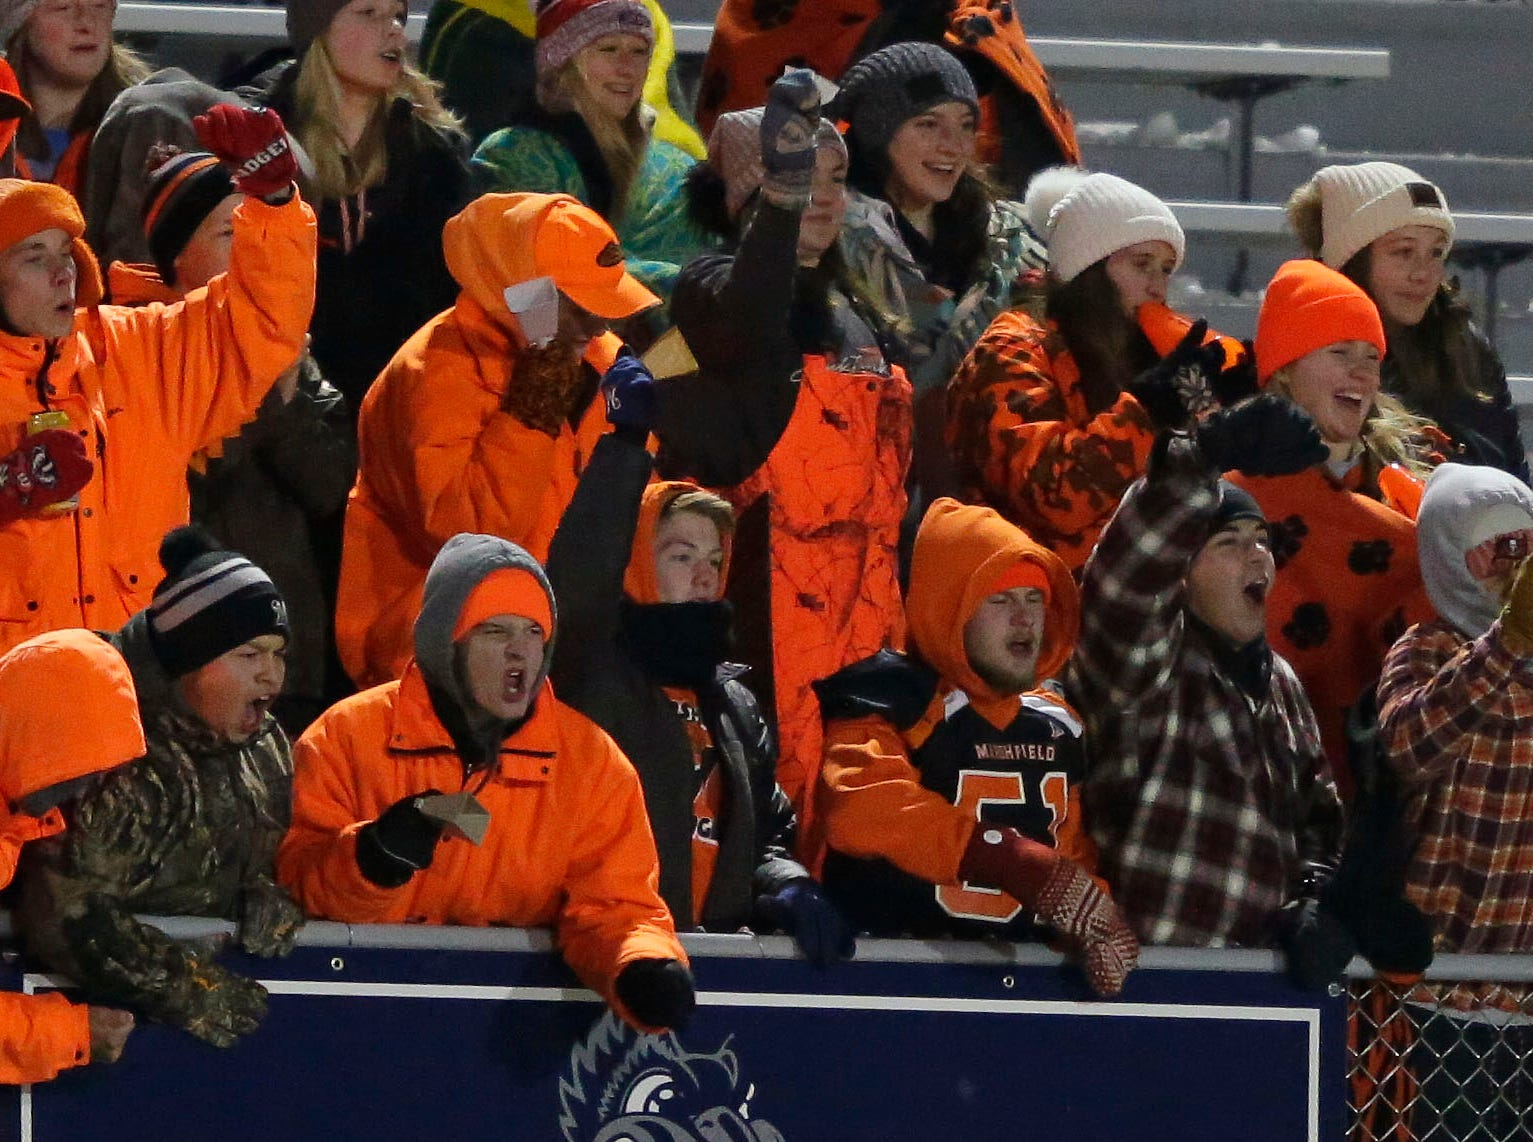 Marshfield fans cheer as the Tigers take on Homestead in a WIAA Division 2 state semifinal football game Friday, November 9, 2018, at Calder Stadium in Menasha, Wis.Ron Page/USA TODAY NETWORK-Wisconsin